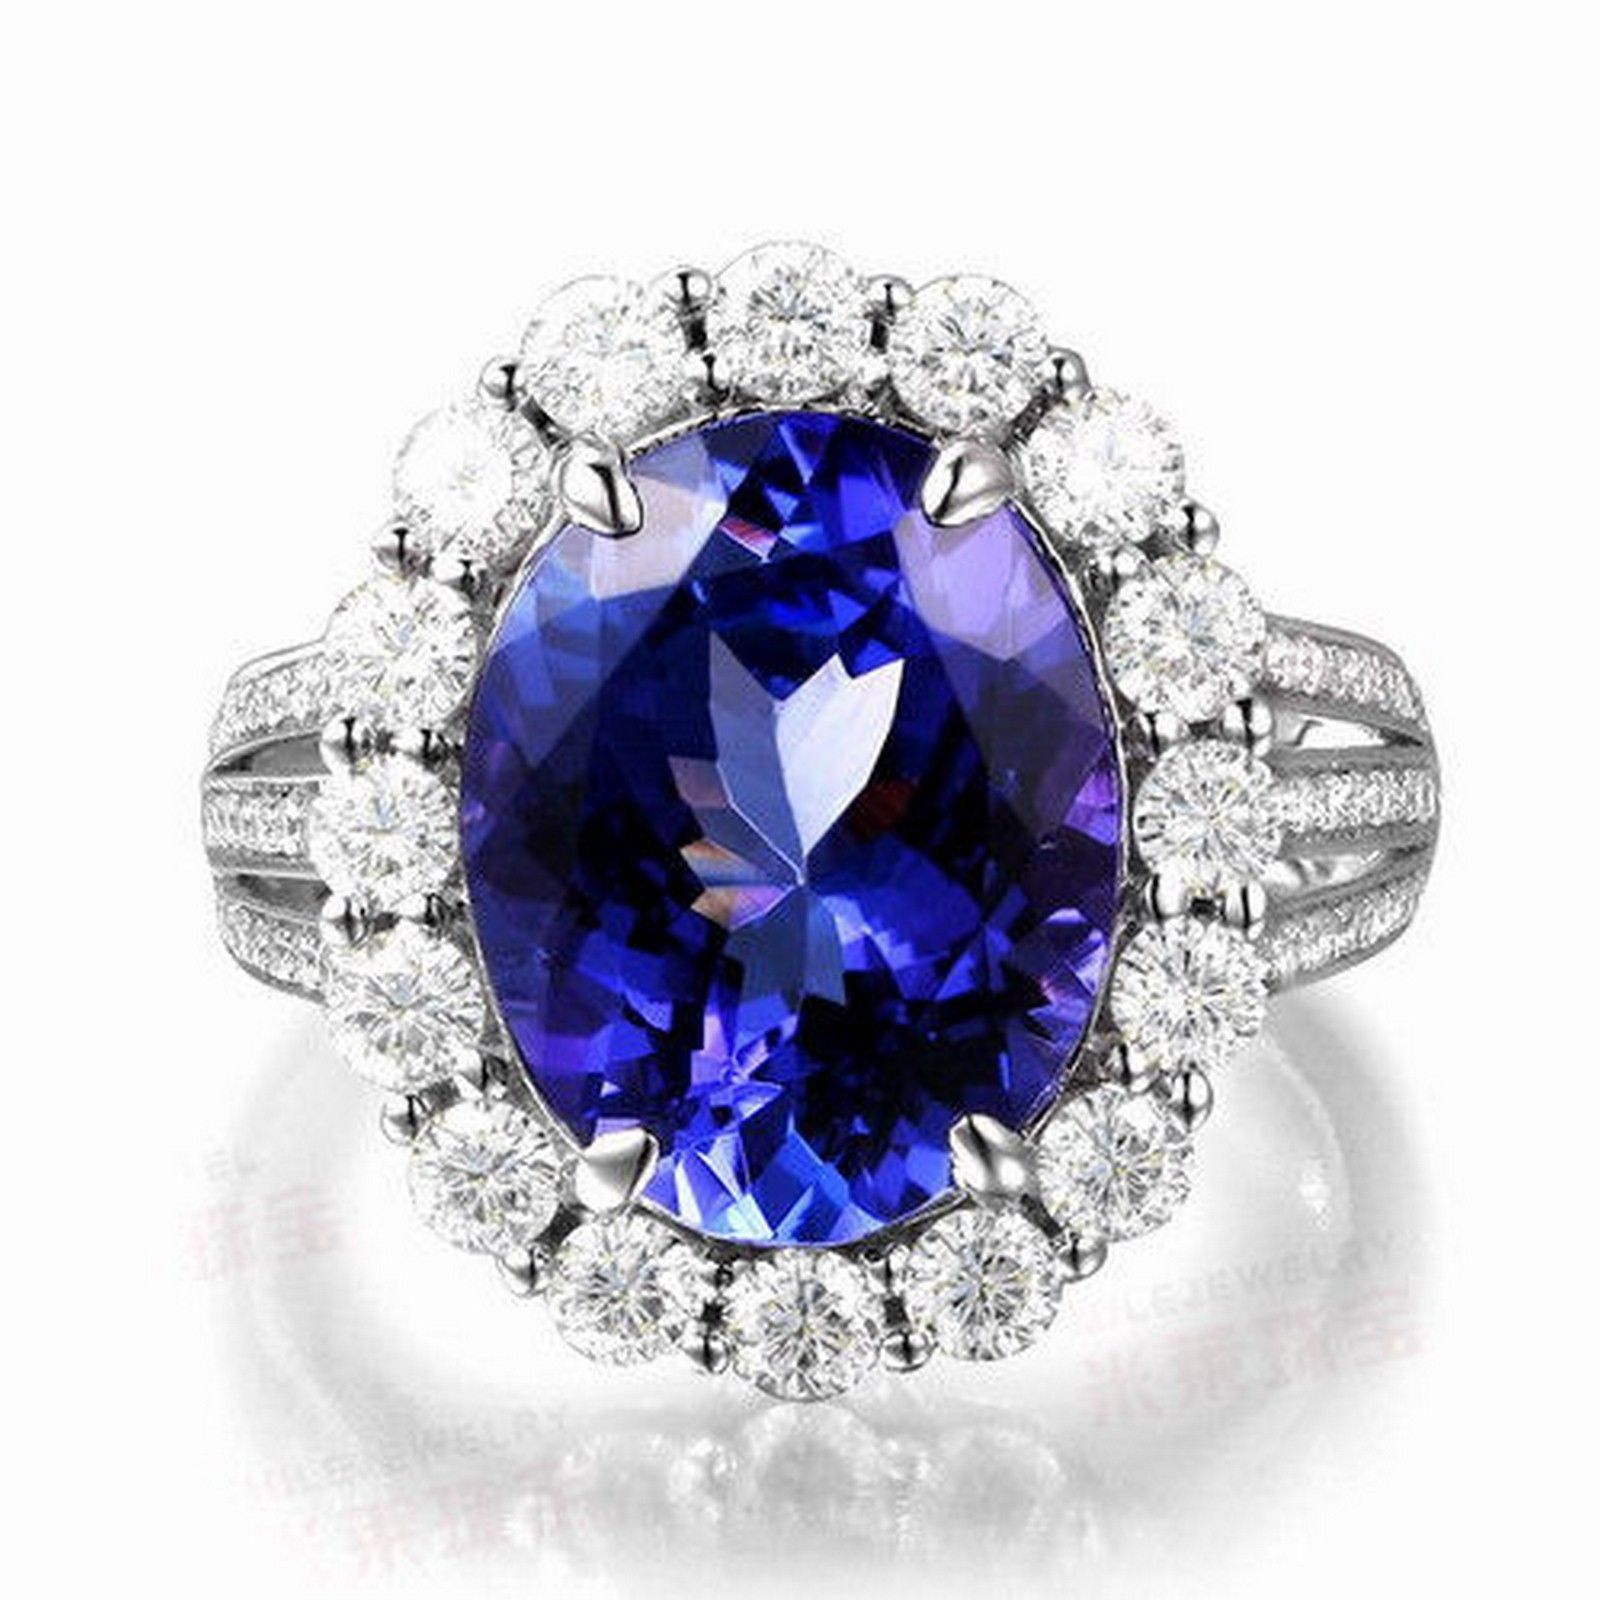 CERTIFIED 3 25CT OVAL BLUE DIAMOND ENGAGEMENT & WEDDING RING 14KT